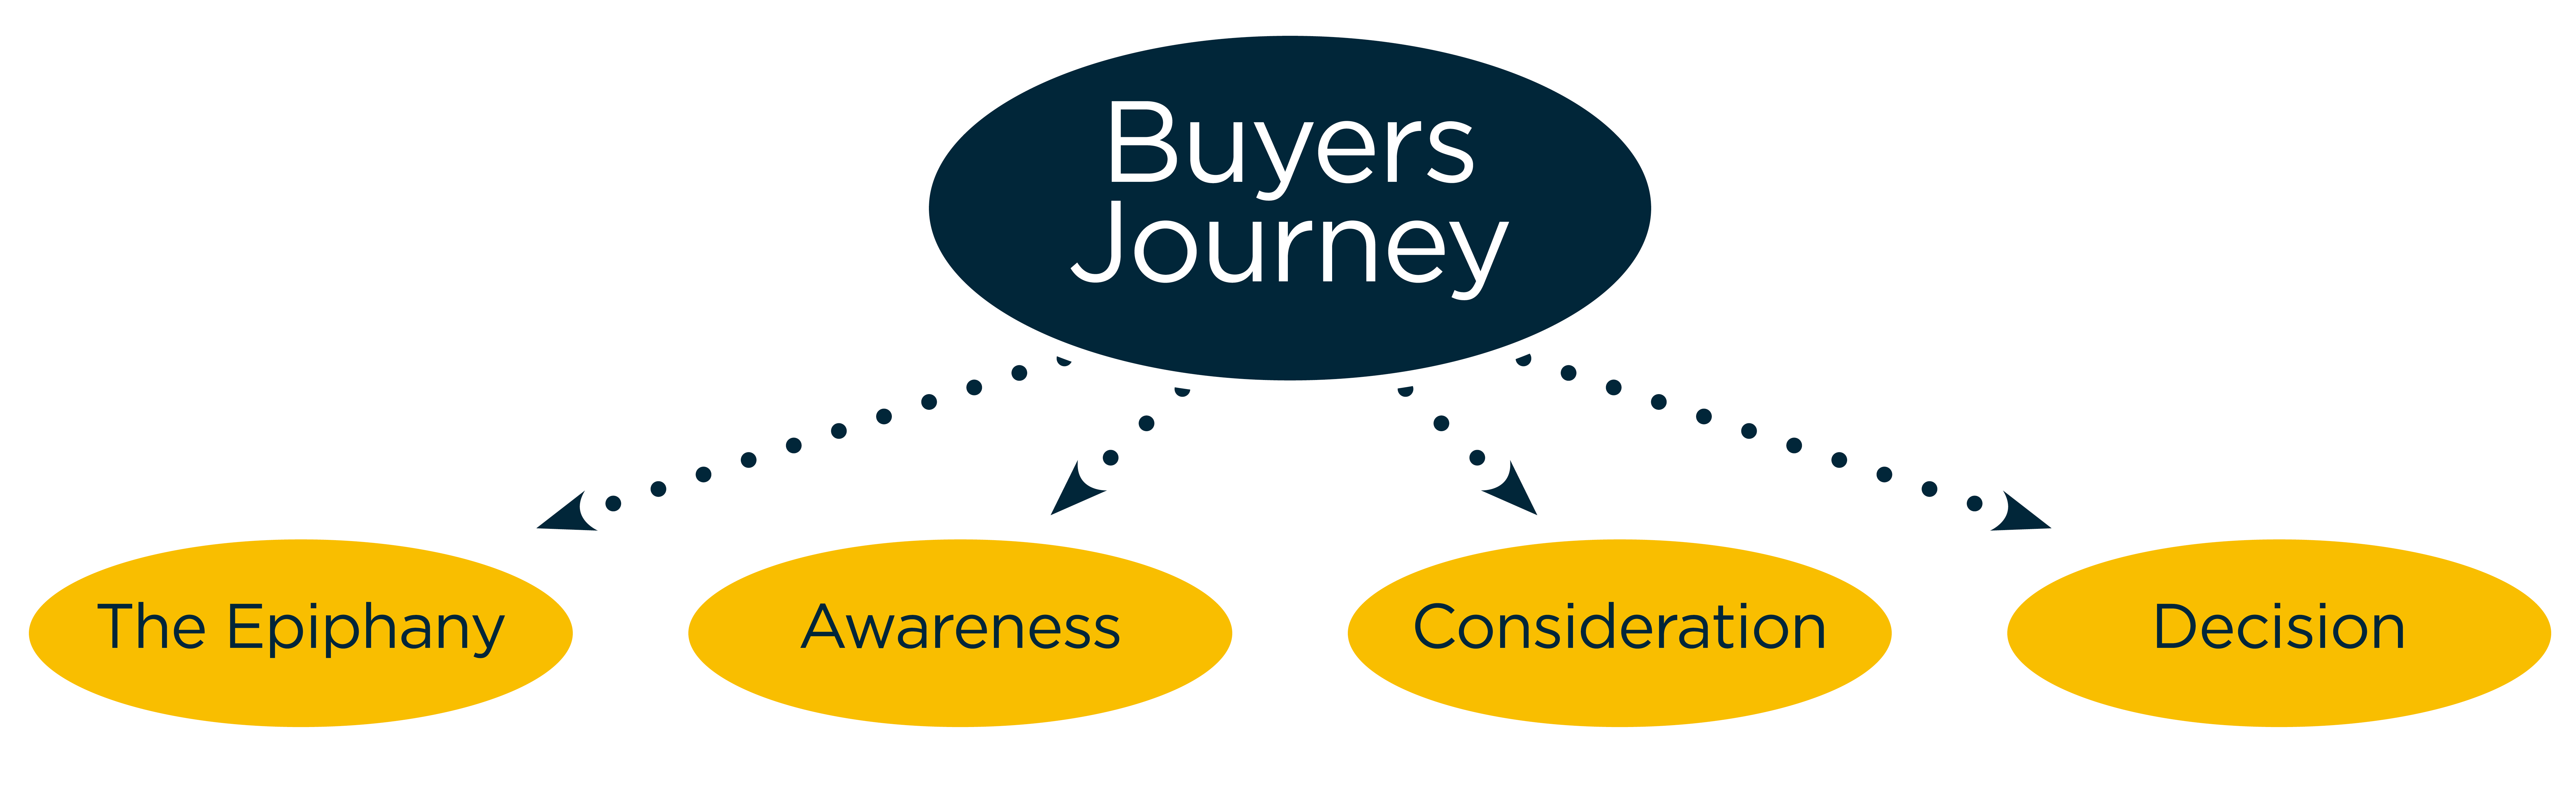 BuyersJourney.png